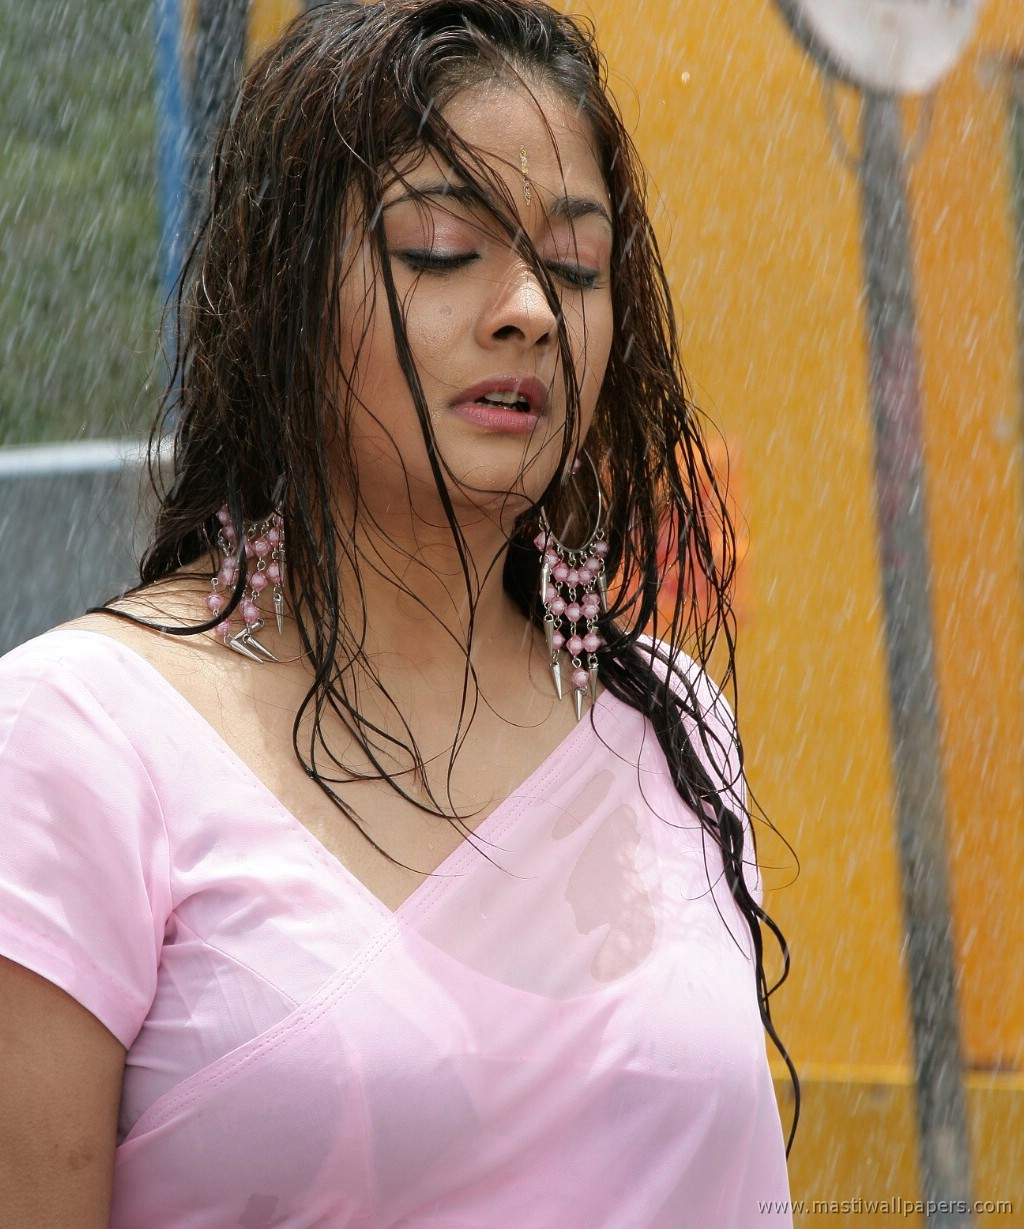 Confirm. agree Nude kiran rathod archives are